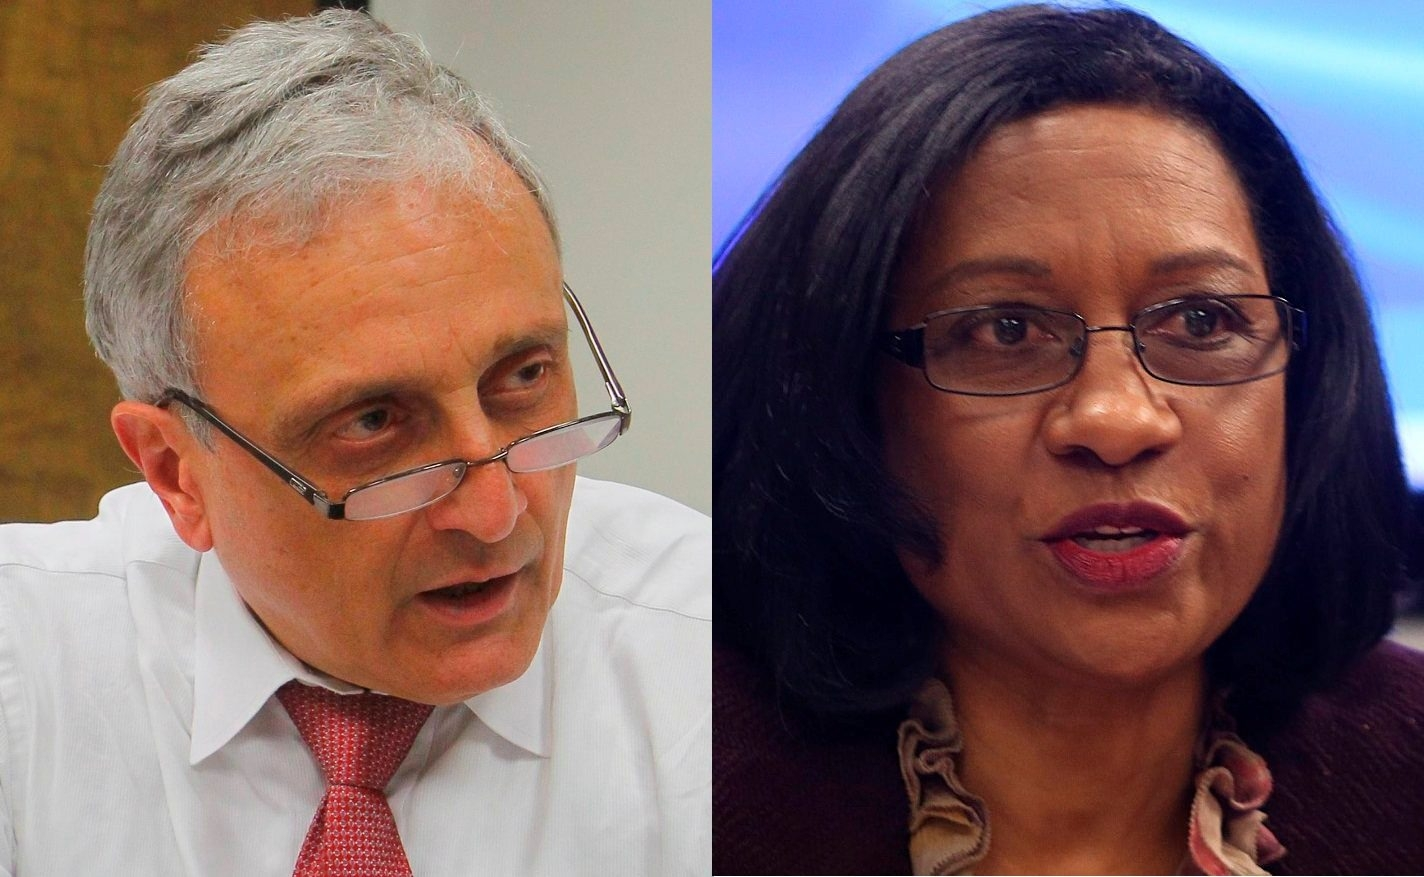 School Board Member Carl Paladino says the district doesn't have time for Superintendent Pamela Brown to train on the job, and he wants her out. Brown cites improvements in the district since she was appointed school chief in June 2012.